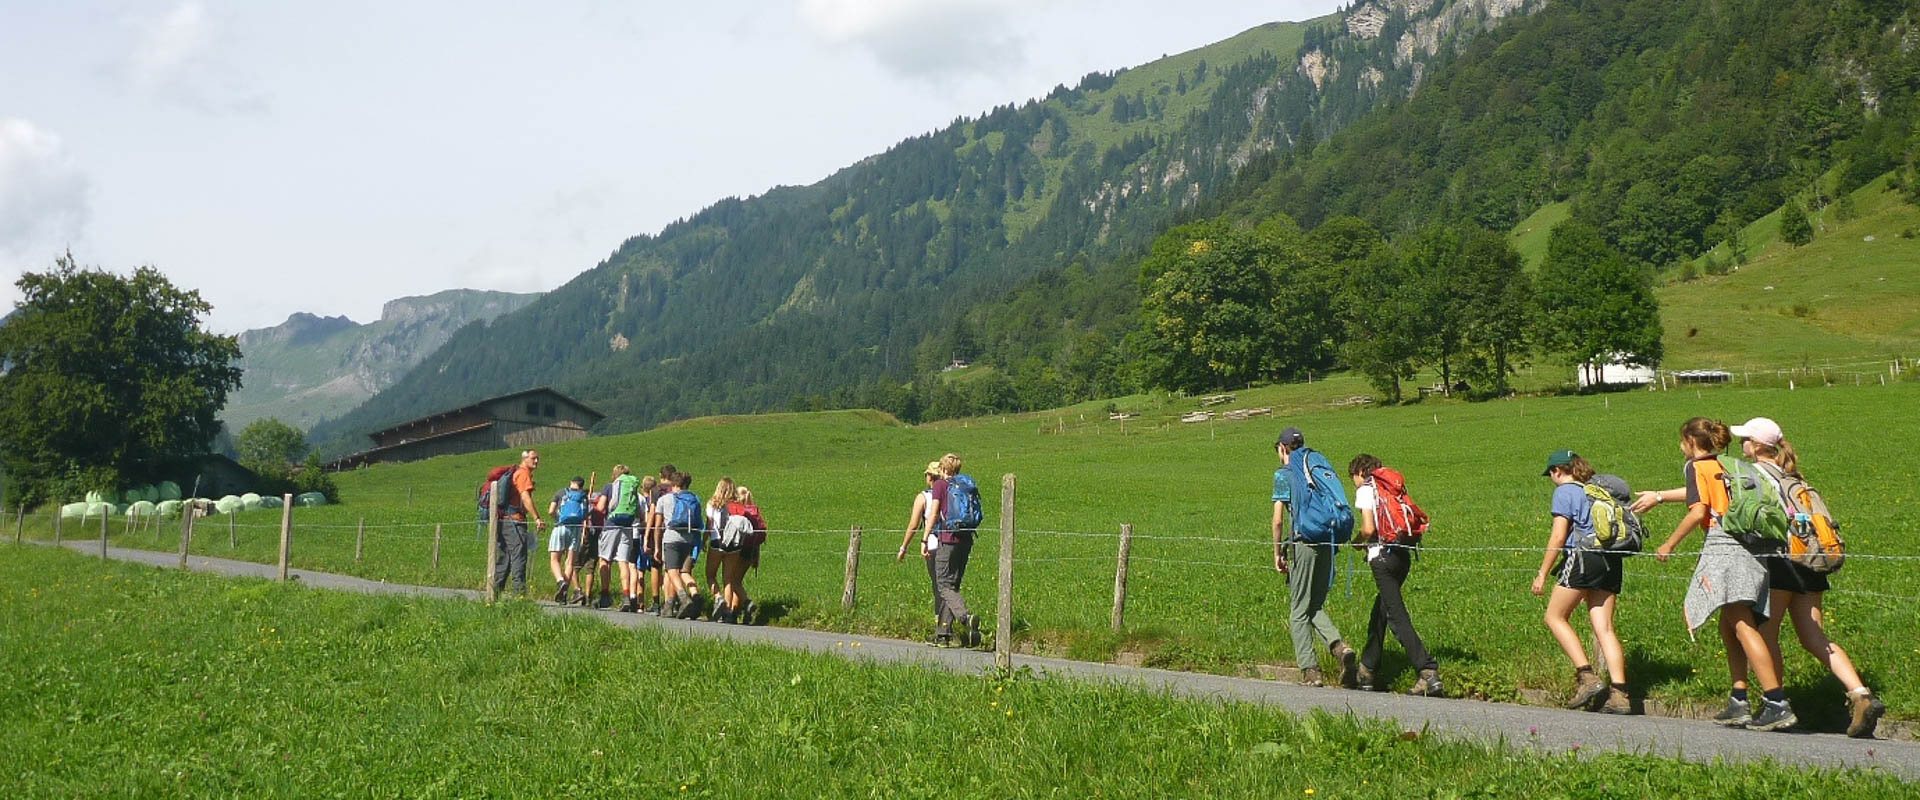 students hiking on a school field trip in switzerland, international school